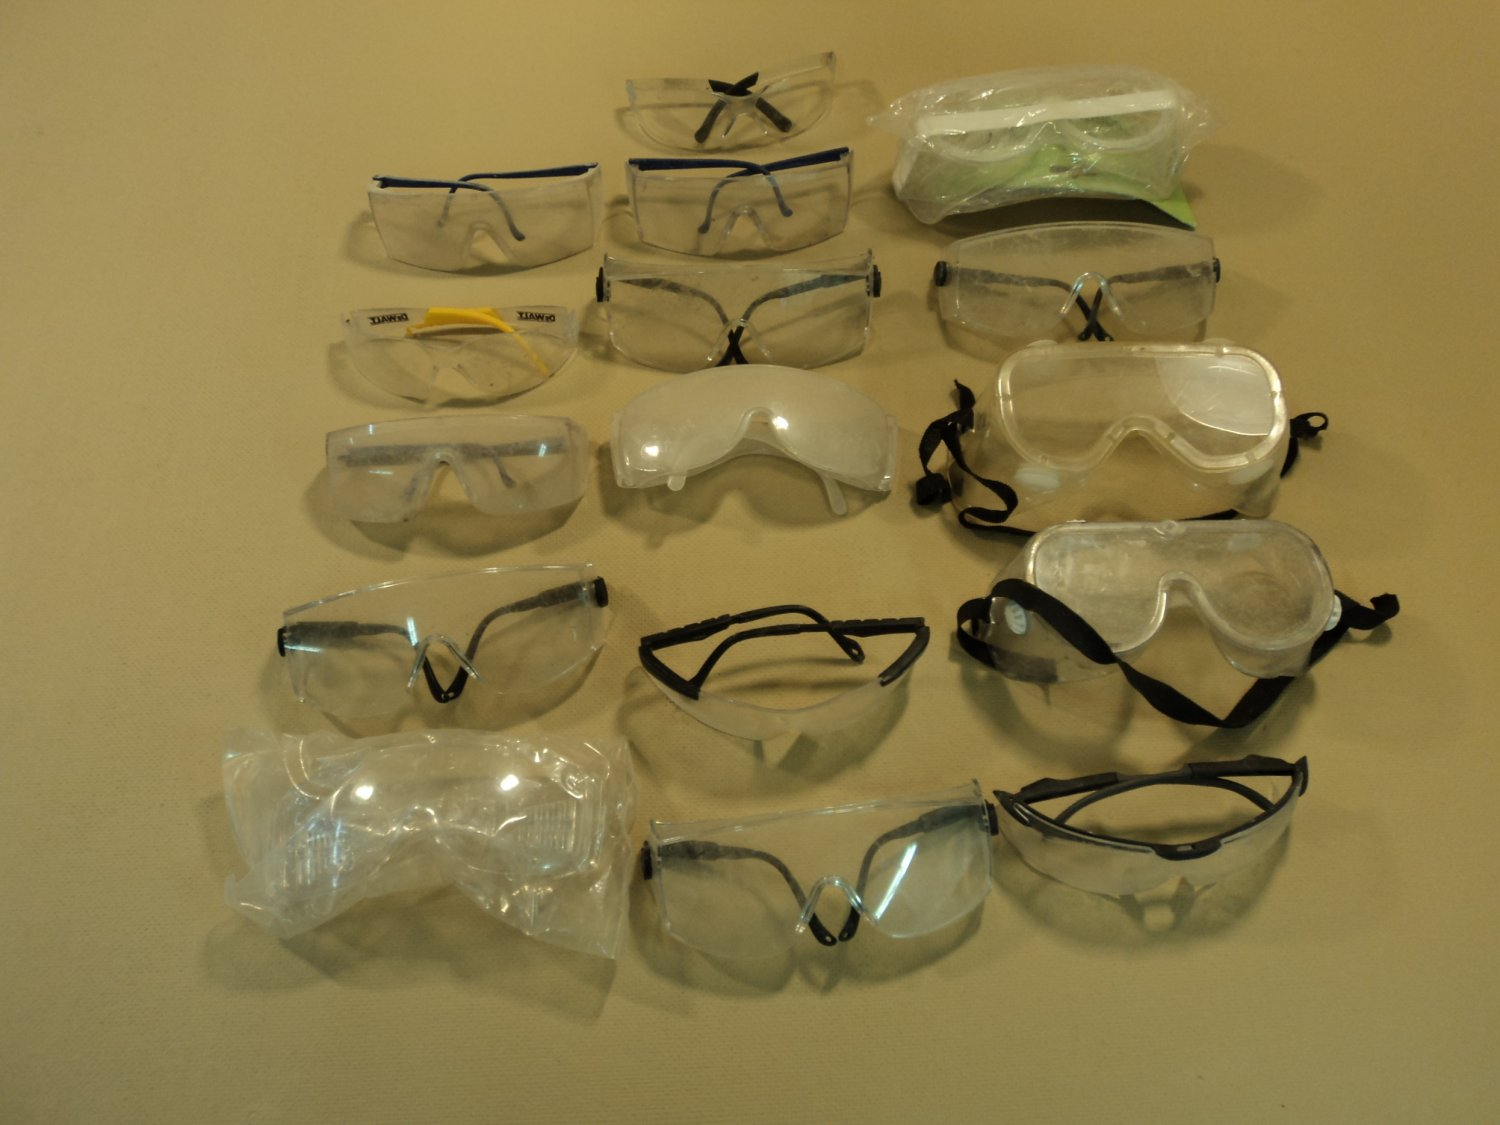 Standard Safety Glasses Goggles Lot of 16 Clear Plastic